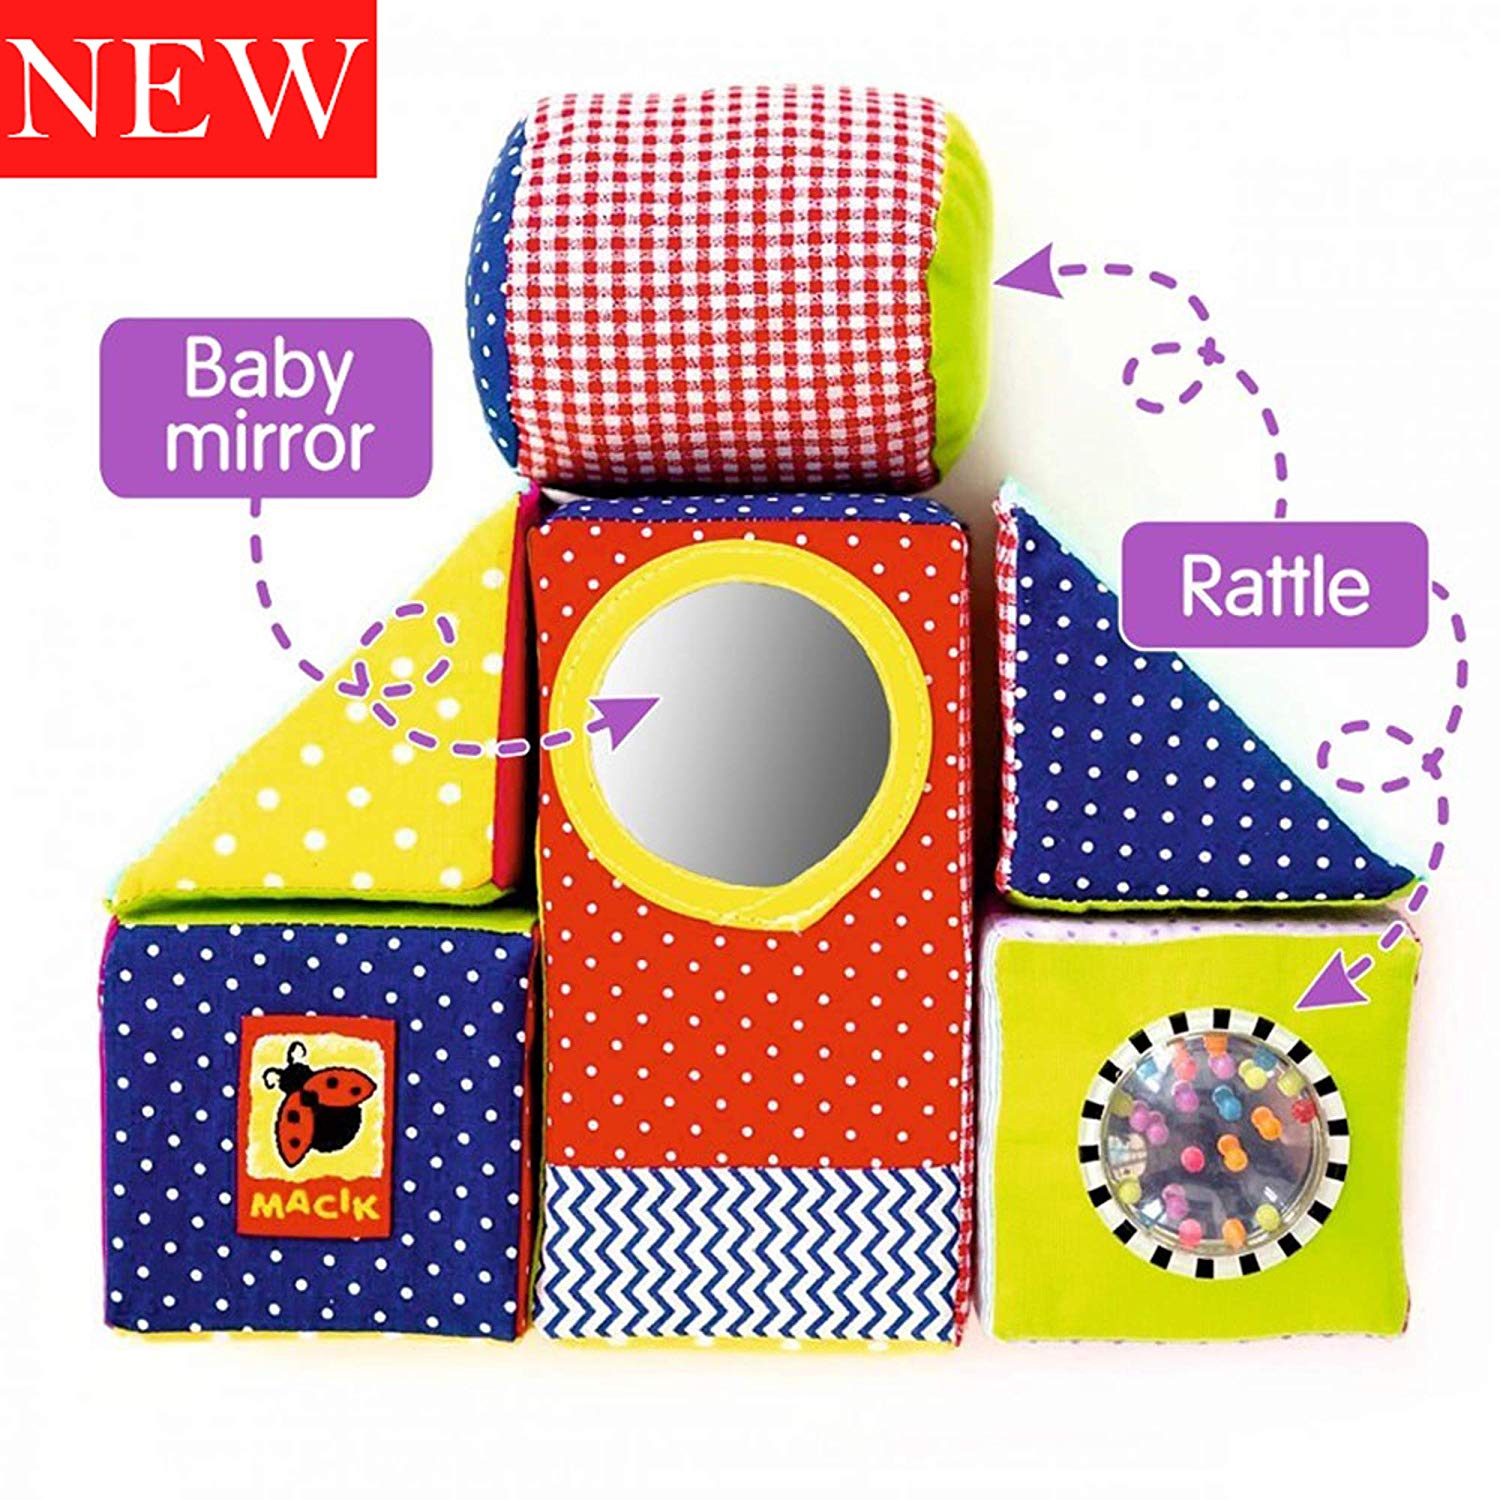 MACIK baby Soft Blocks for kids - baby Stacking toys baby Development toys - fine motor skills toys Soft Cubes - Soft infant toys 6m baby toys Rattle toy baby educational toys 12-18 months - Soft toys